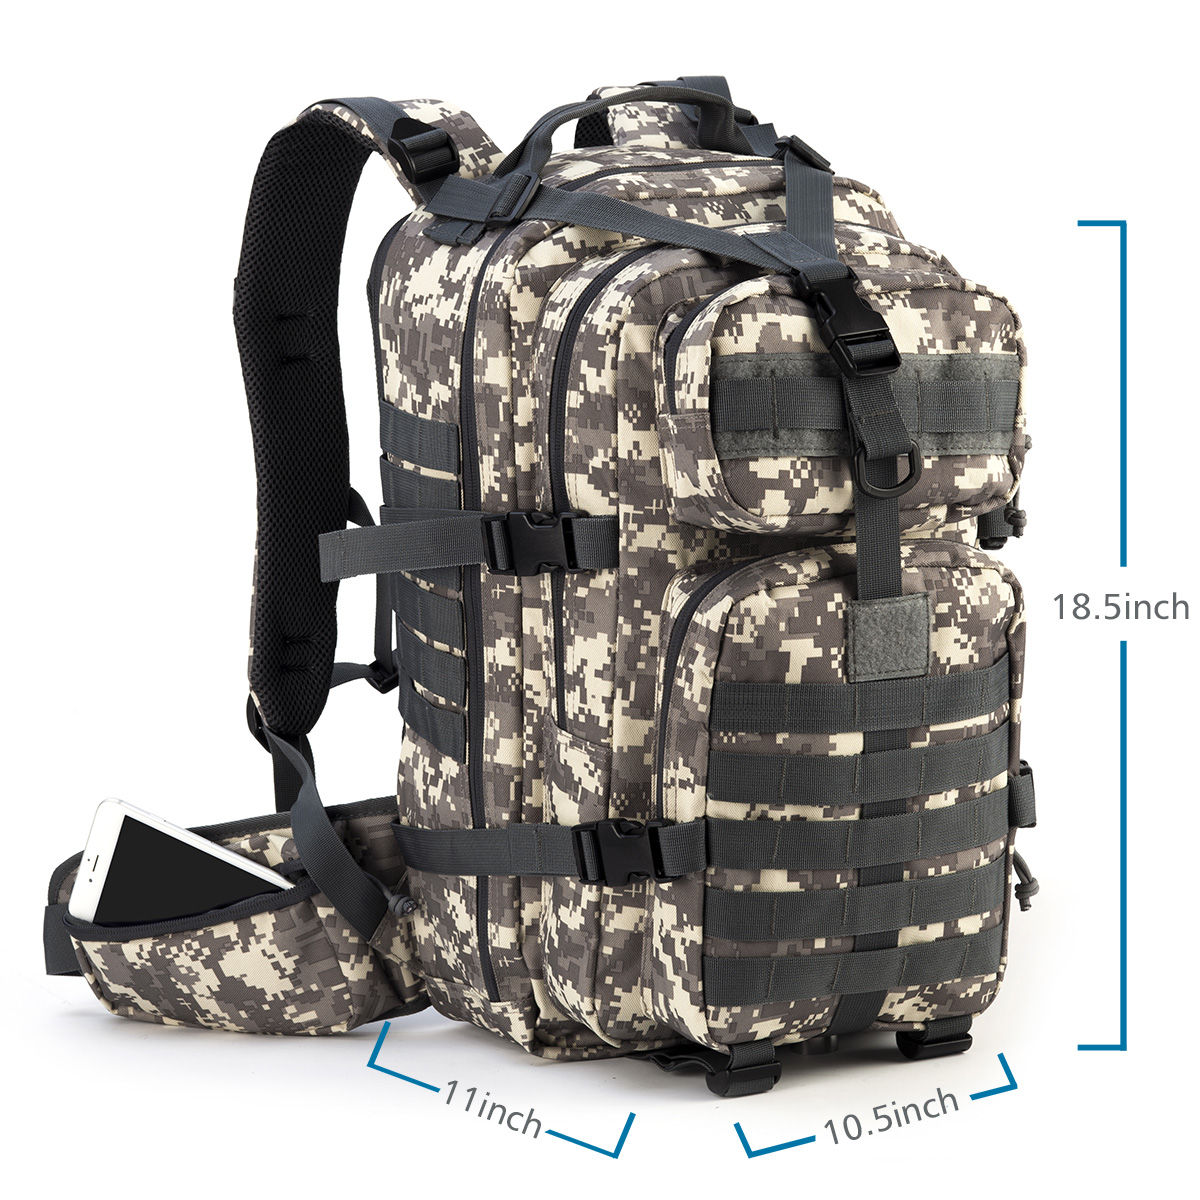 Small Molle For Army Rupumpack Trekking Hydration Hiking Hunting Bag 35l Out Outdoor Military Rucksack Camping Backpack Tactical Assault Bug zVMpSqU